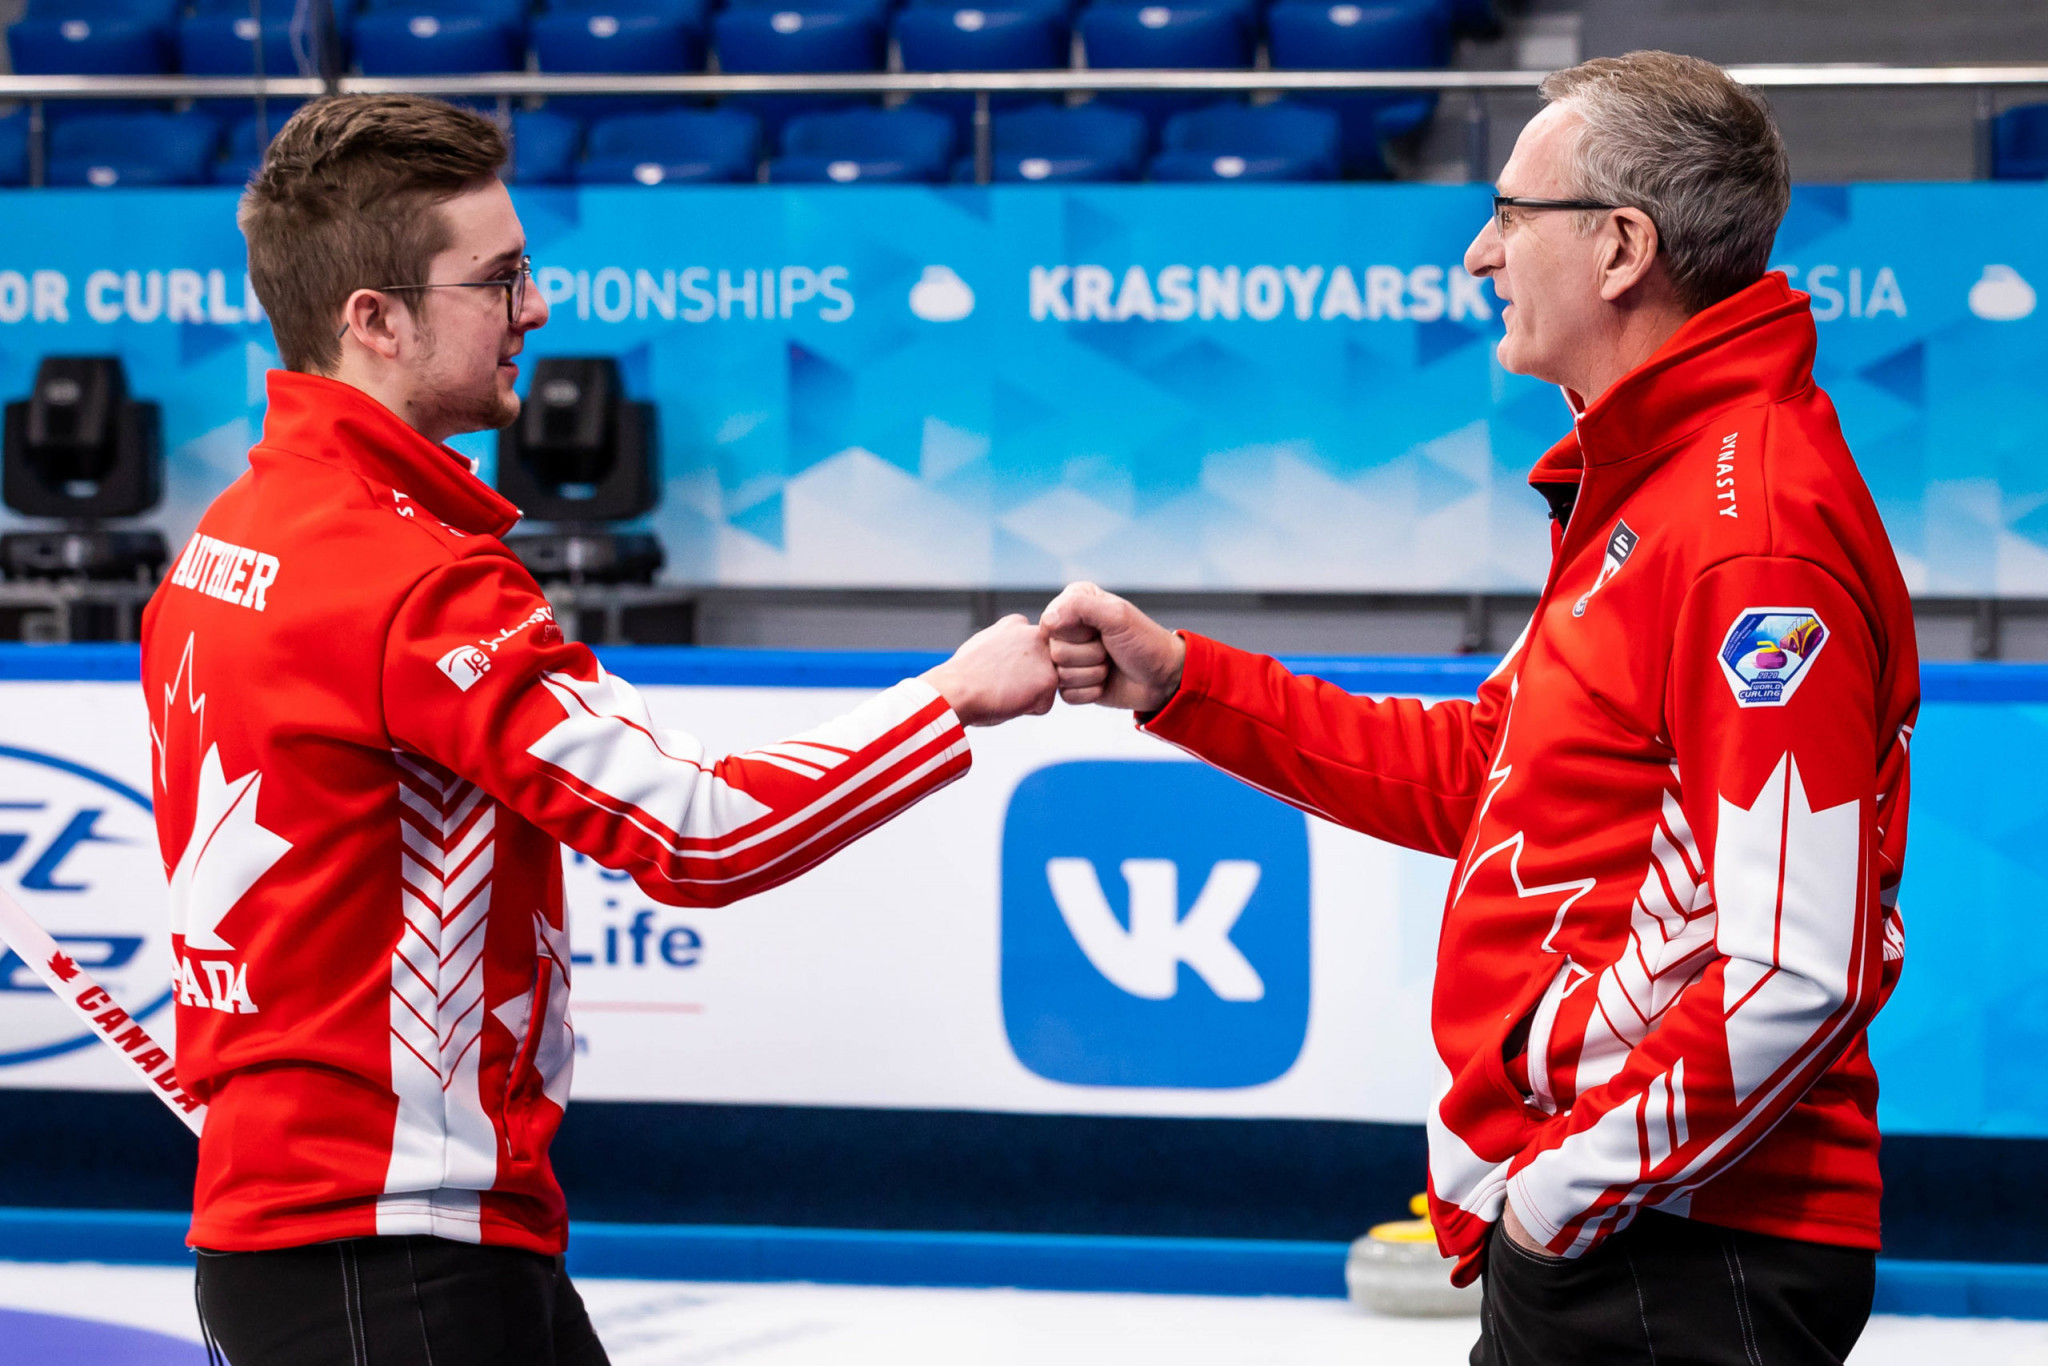 Canada through to World Junior Curling Championships finals